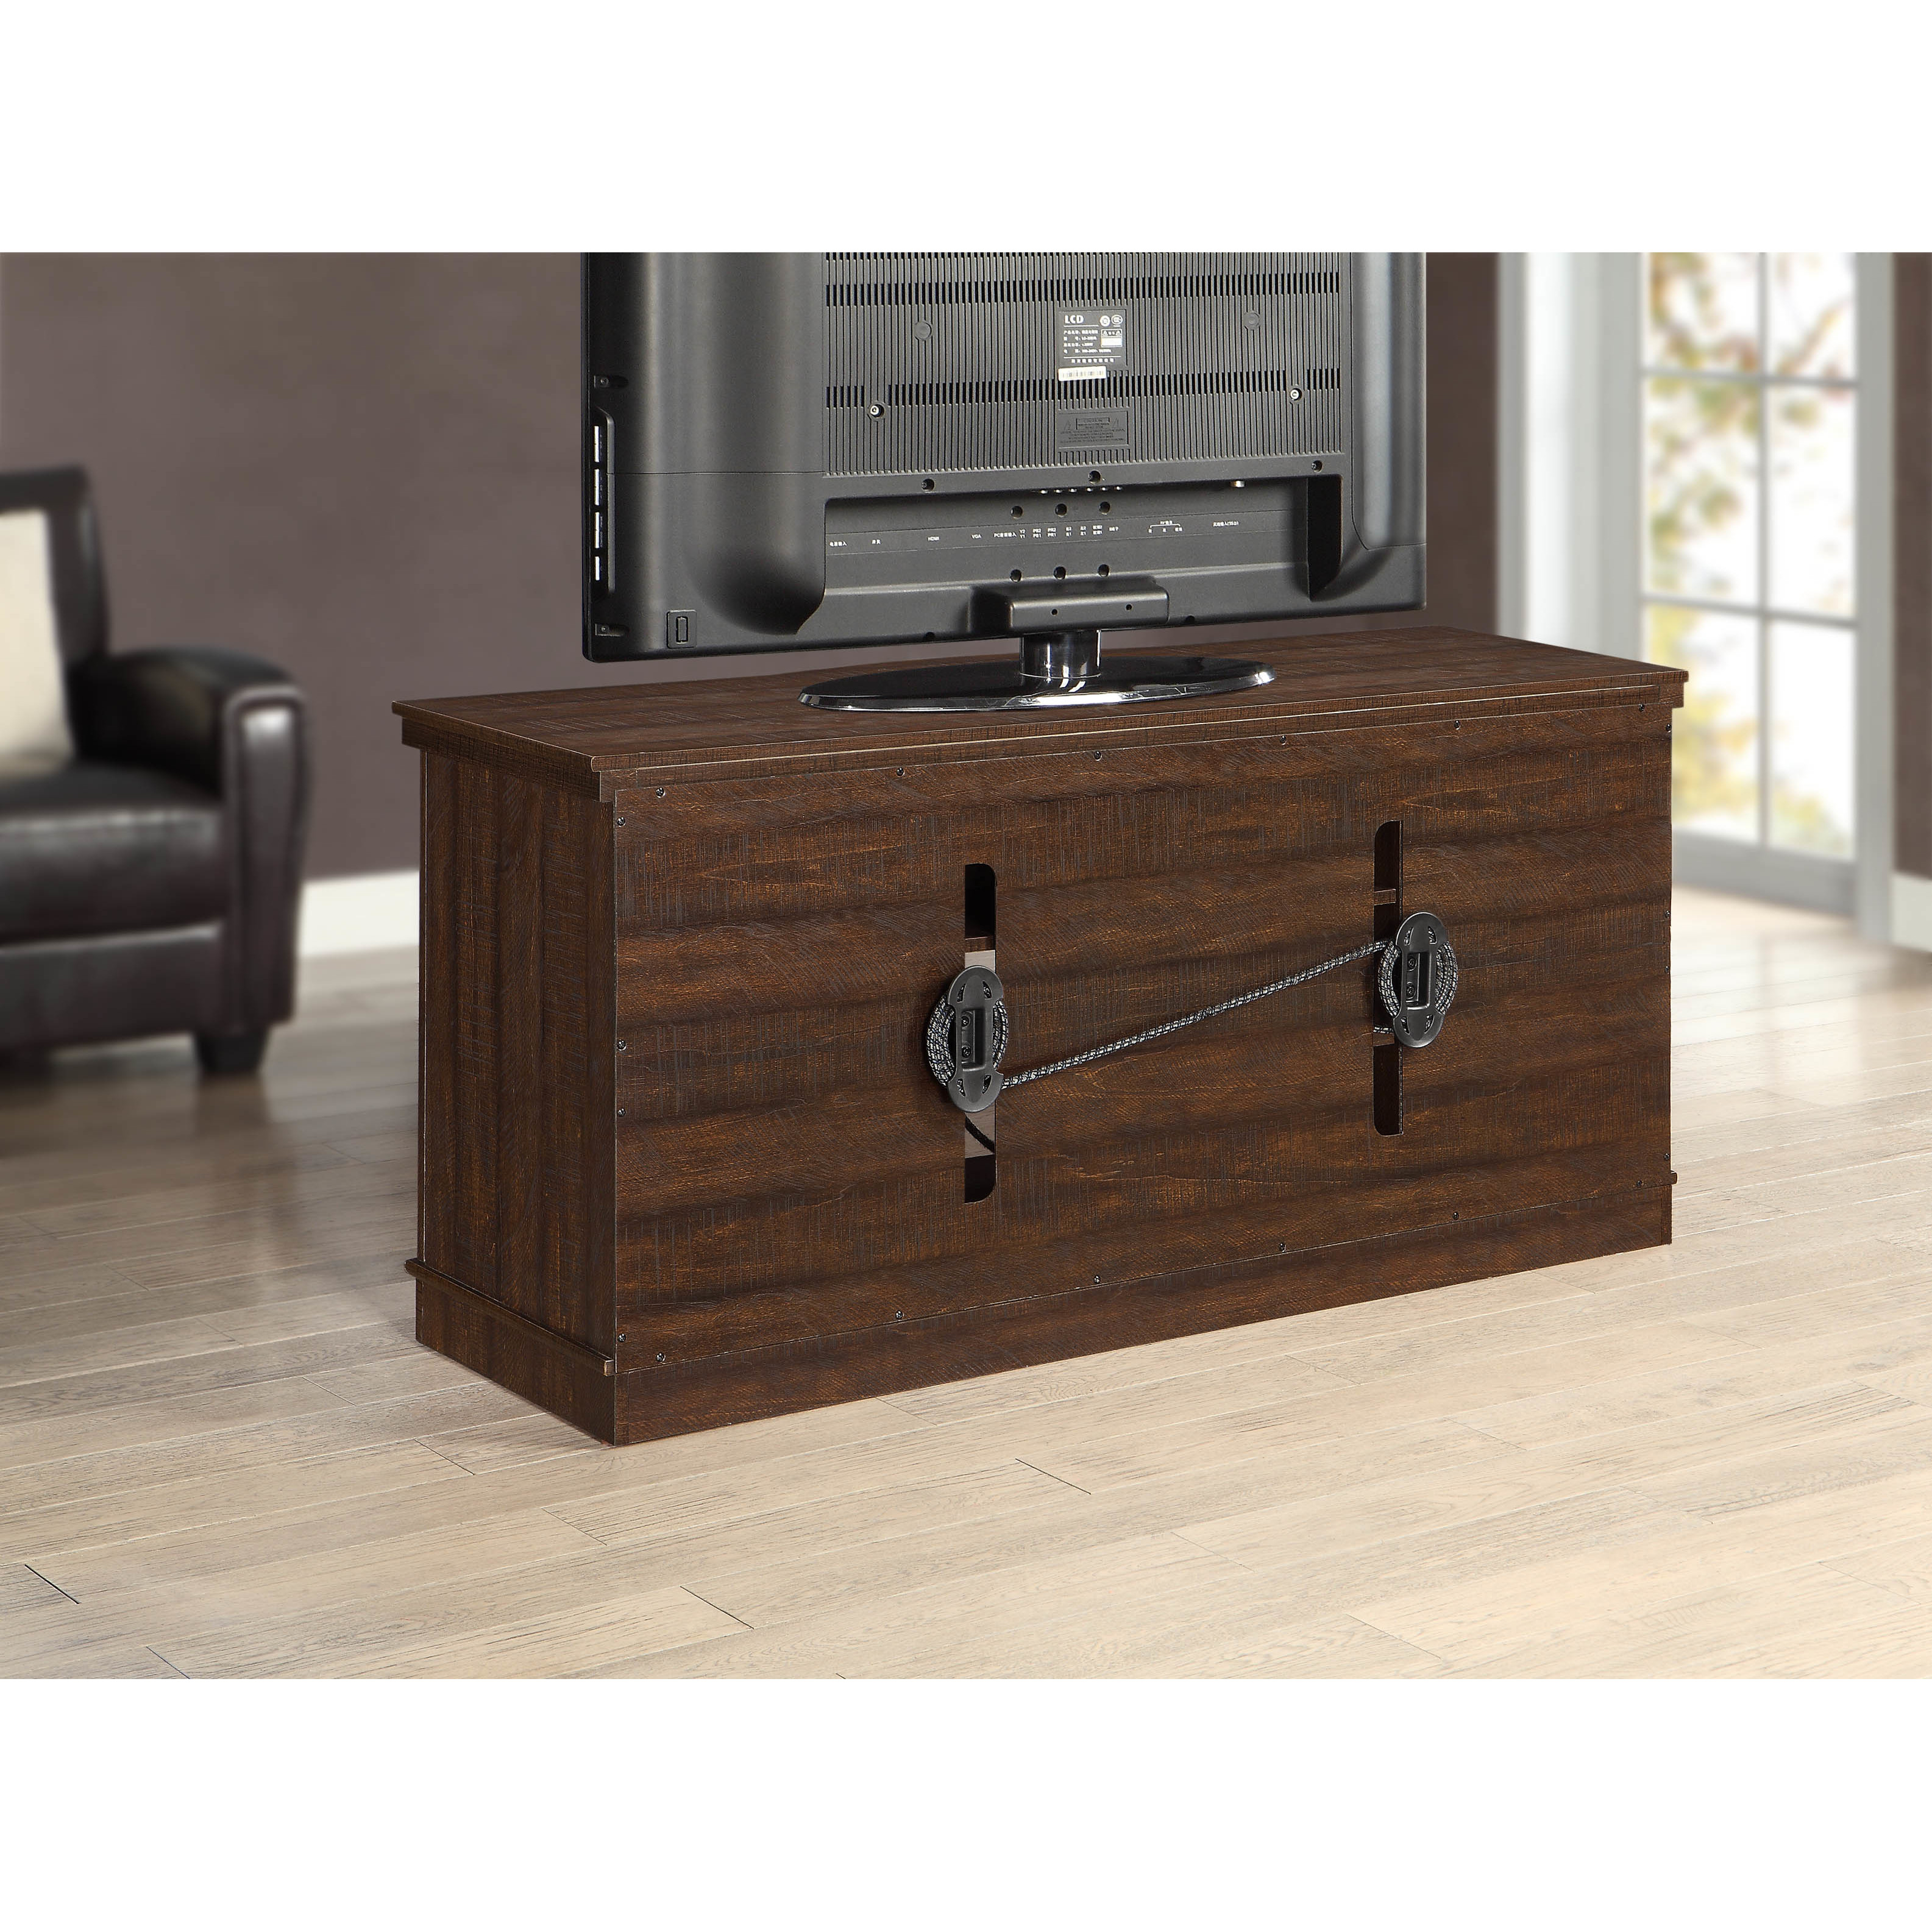 Mesmerizing whalen tv stand for home furniture design with whalen 3-in-1 tv stand